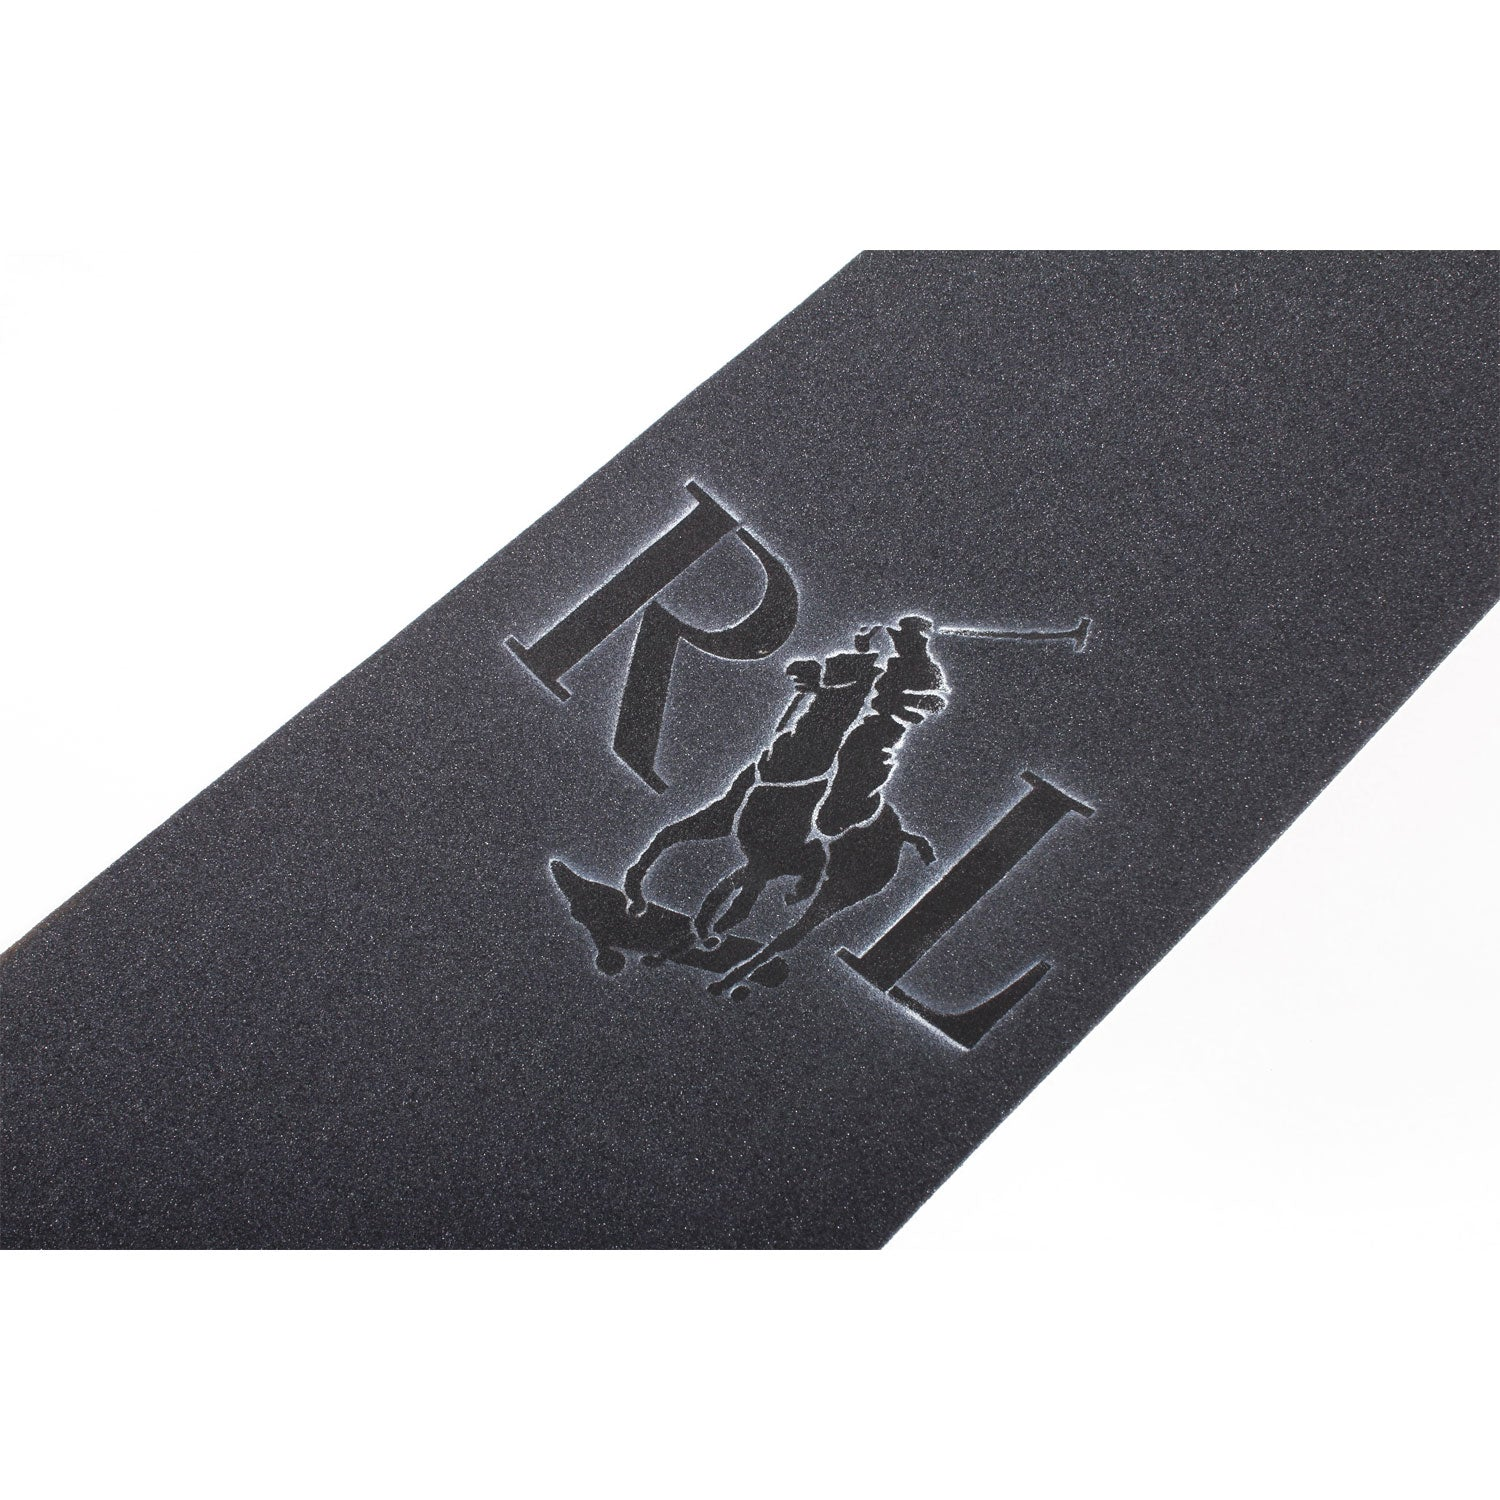 When RL Big Logo Griptape